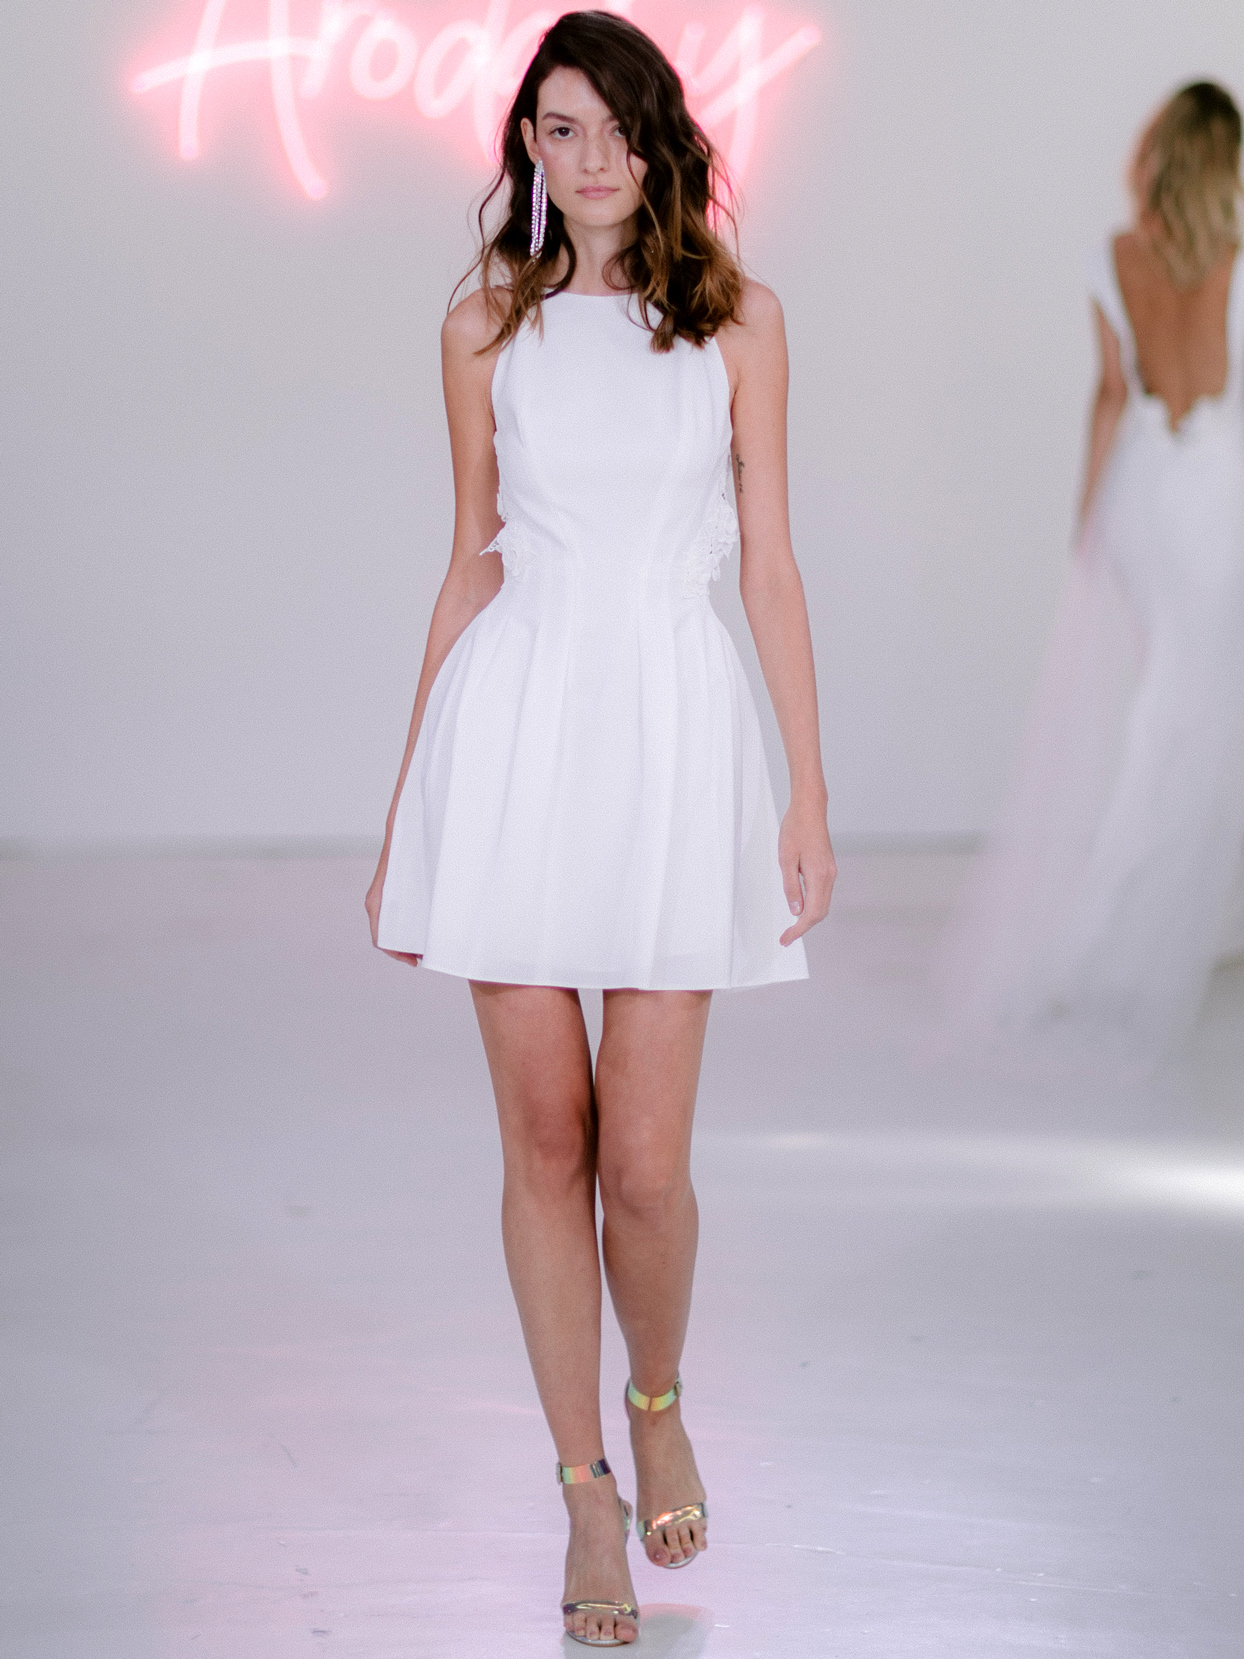 Rime Arodaky X The Mews Bridal halter neckline mini wedding dress fall 2020